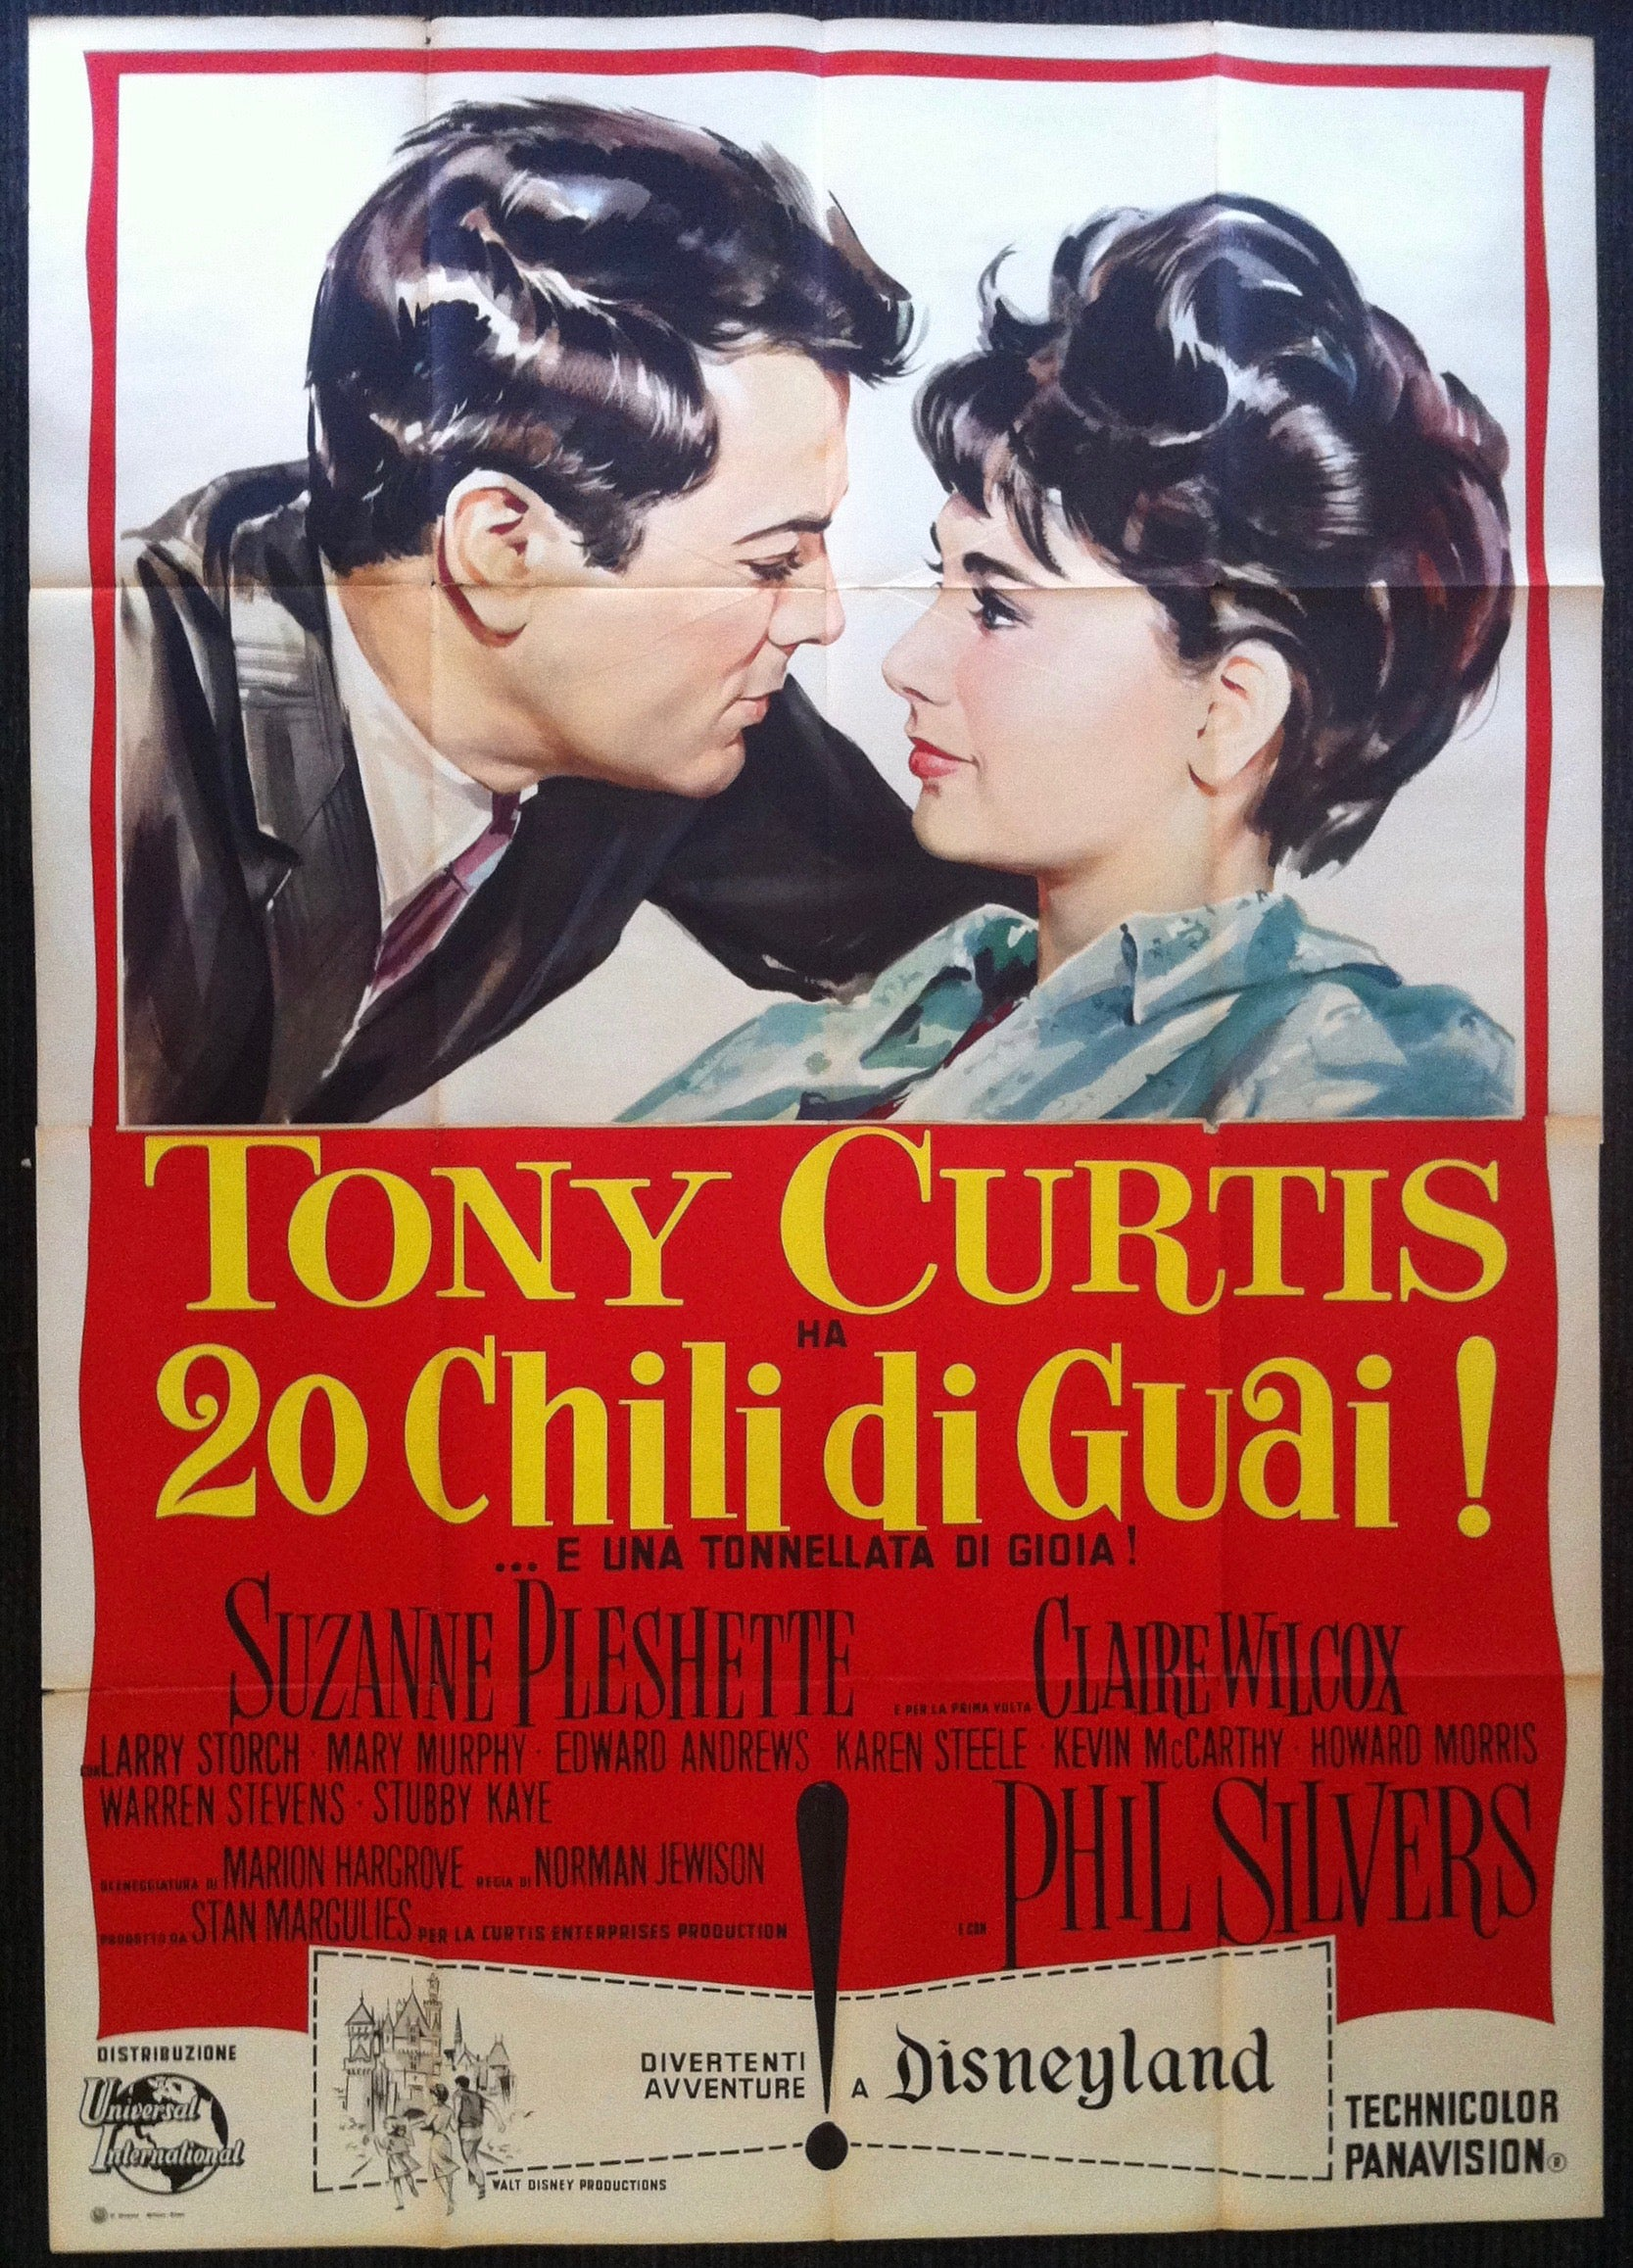 Tony Curtis Ha 20 Chili Di Gua !